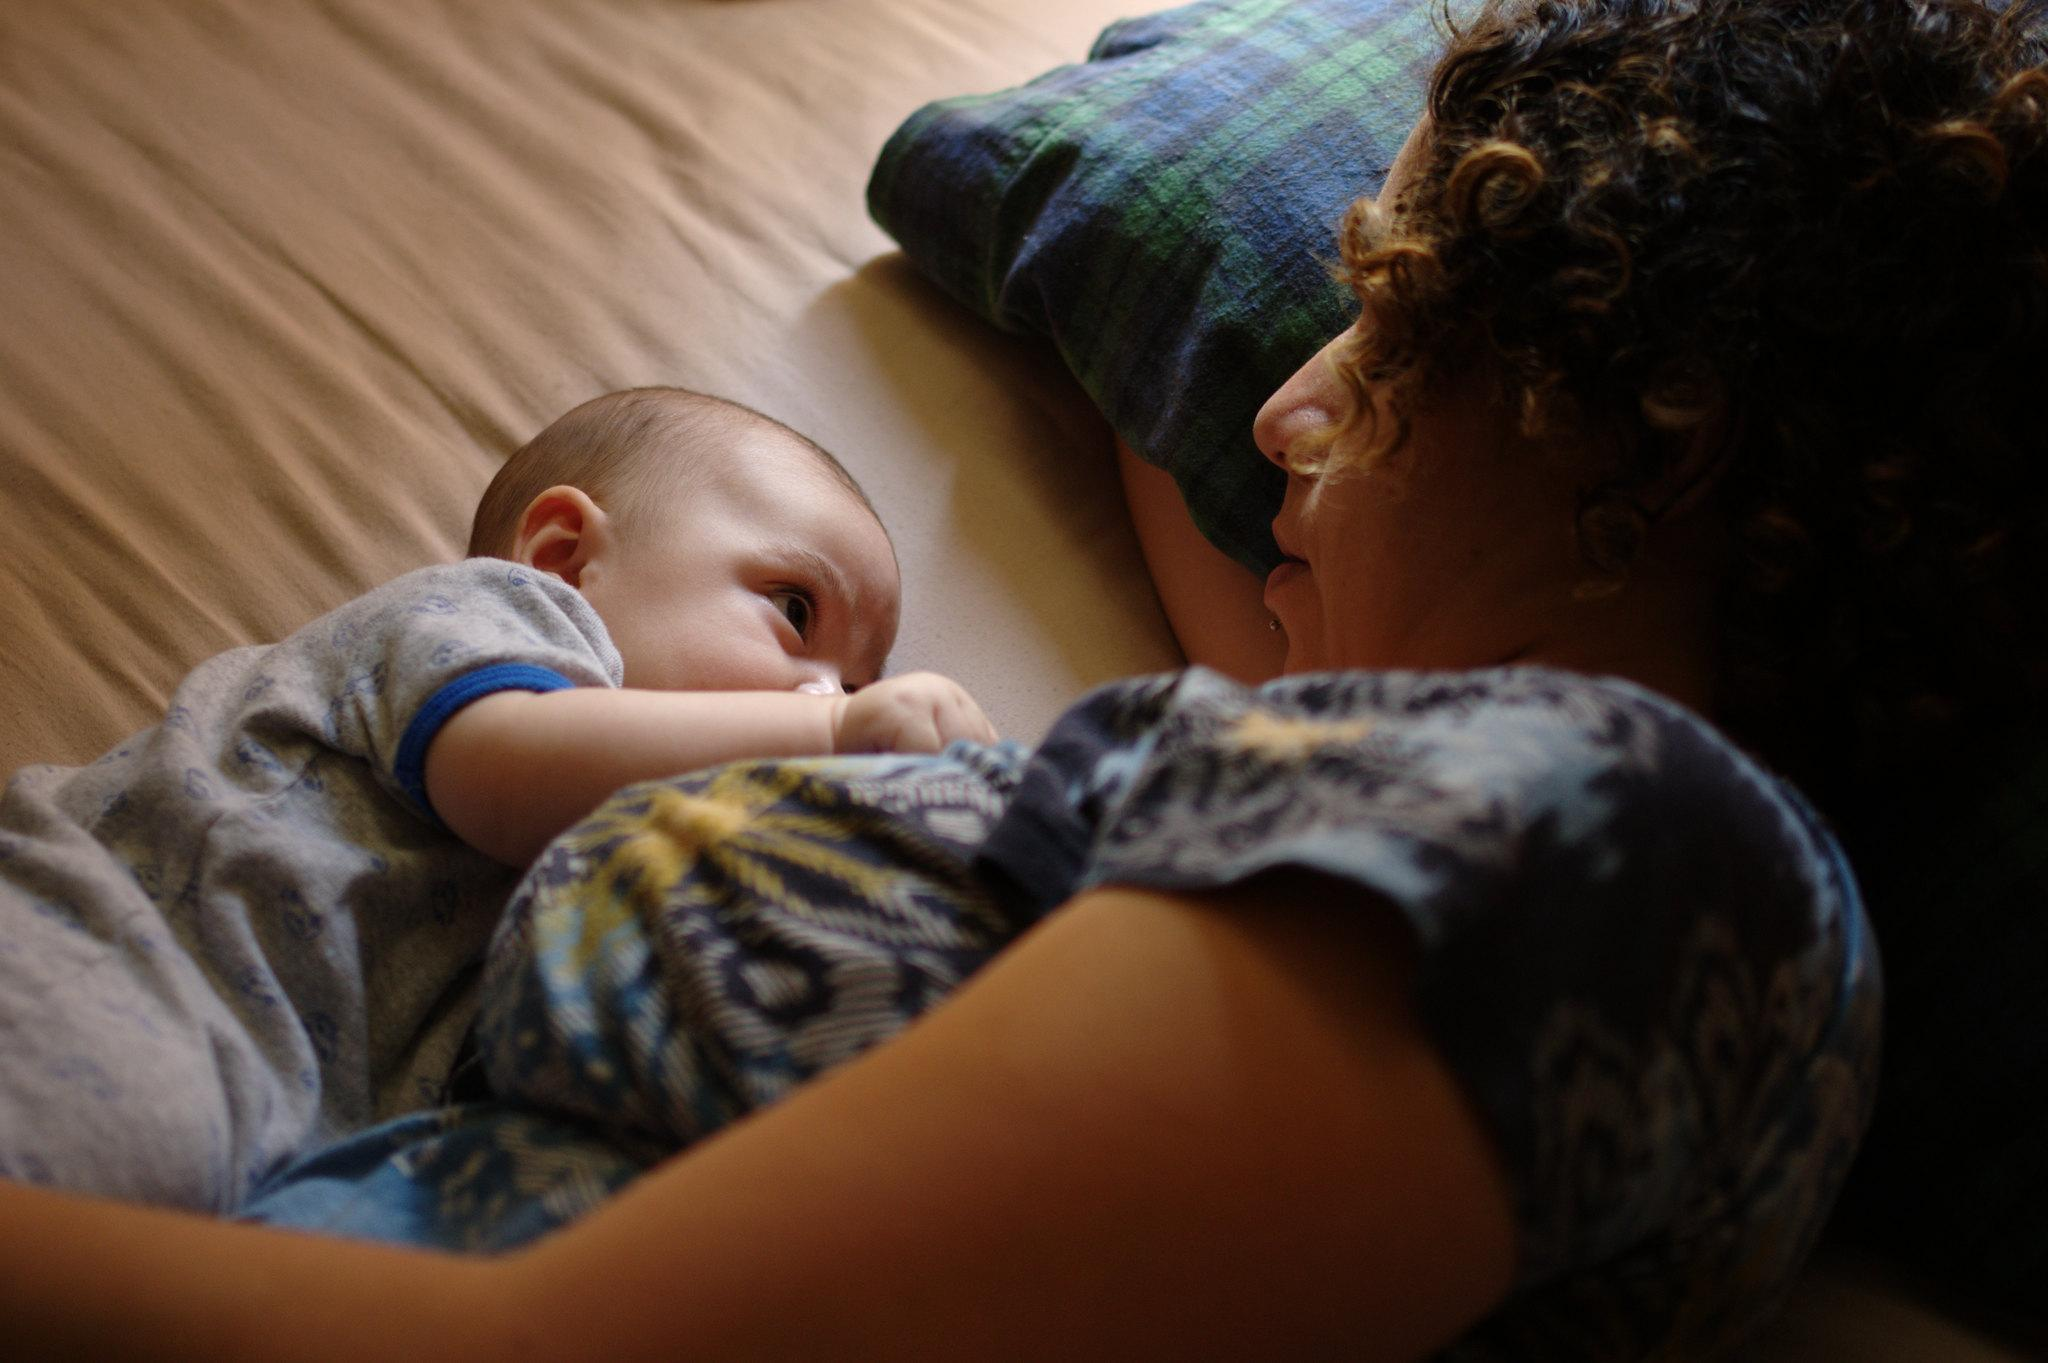 A mother is shown lying comfortably on her side, head propped up by a pillow, with her baby lying next to her and breastfeeding. Mother and baby are making eye contact.